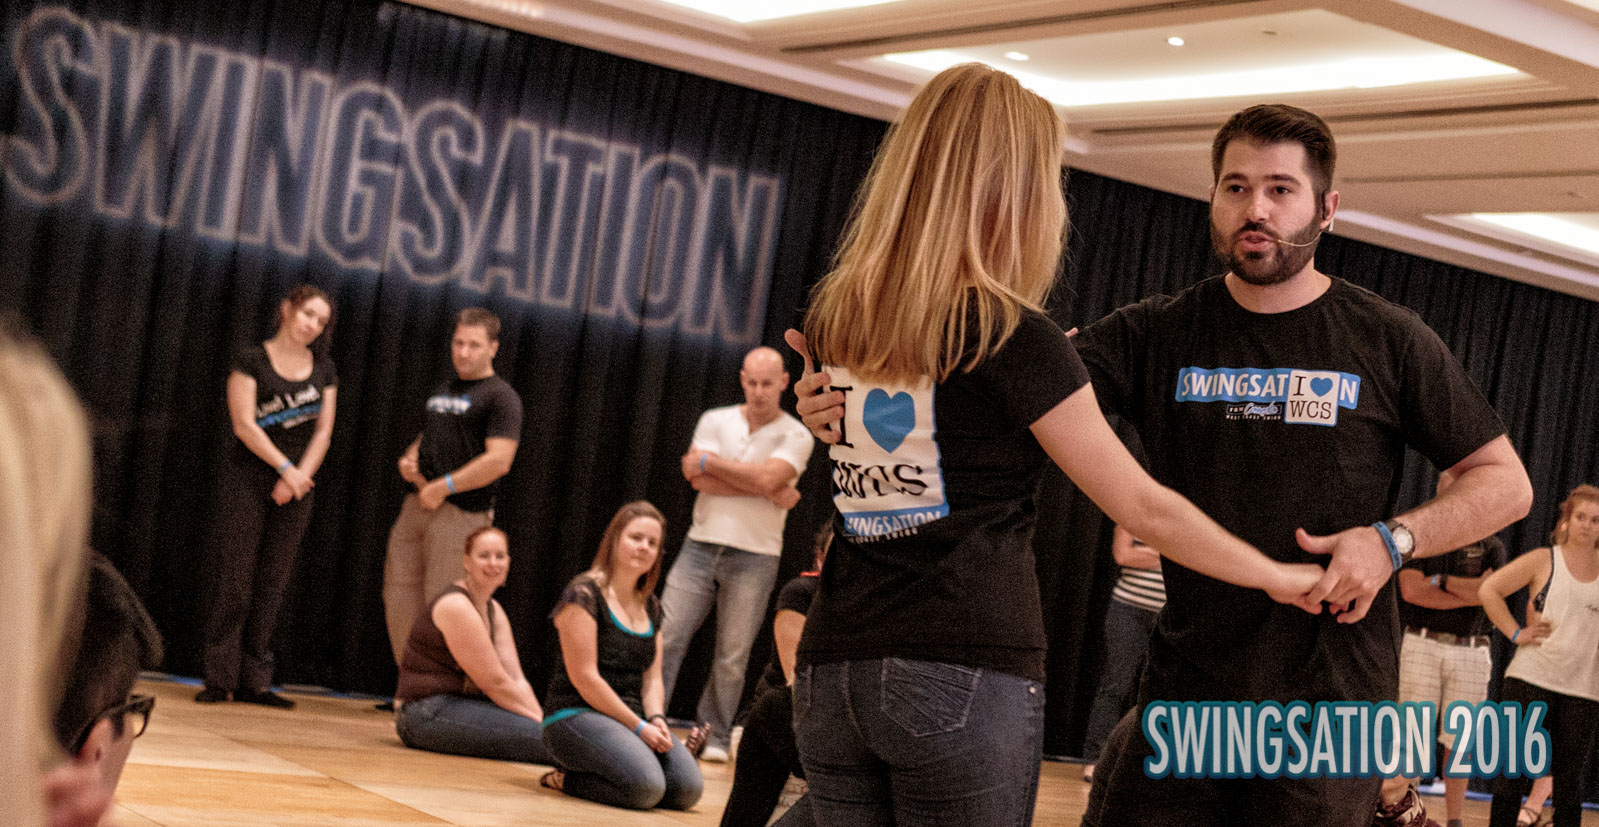 20160520_swingsation2016_RW_1459 copy